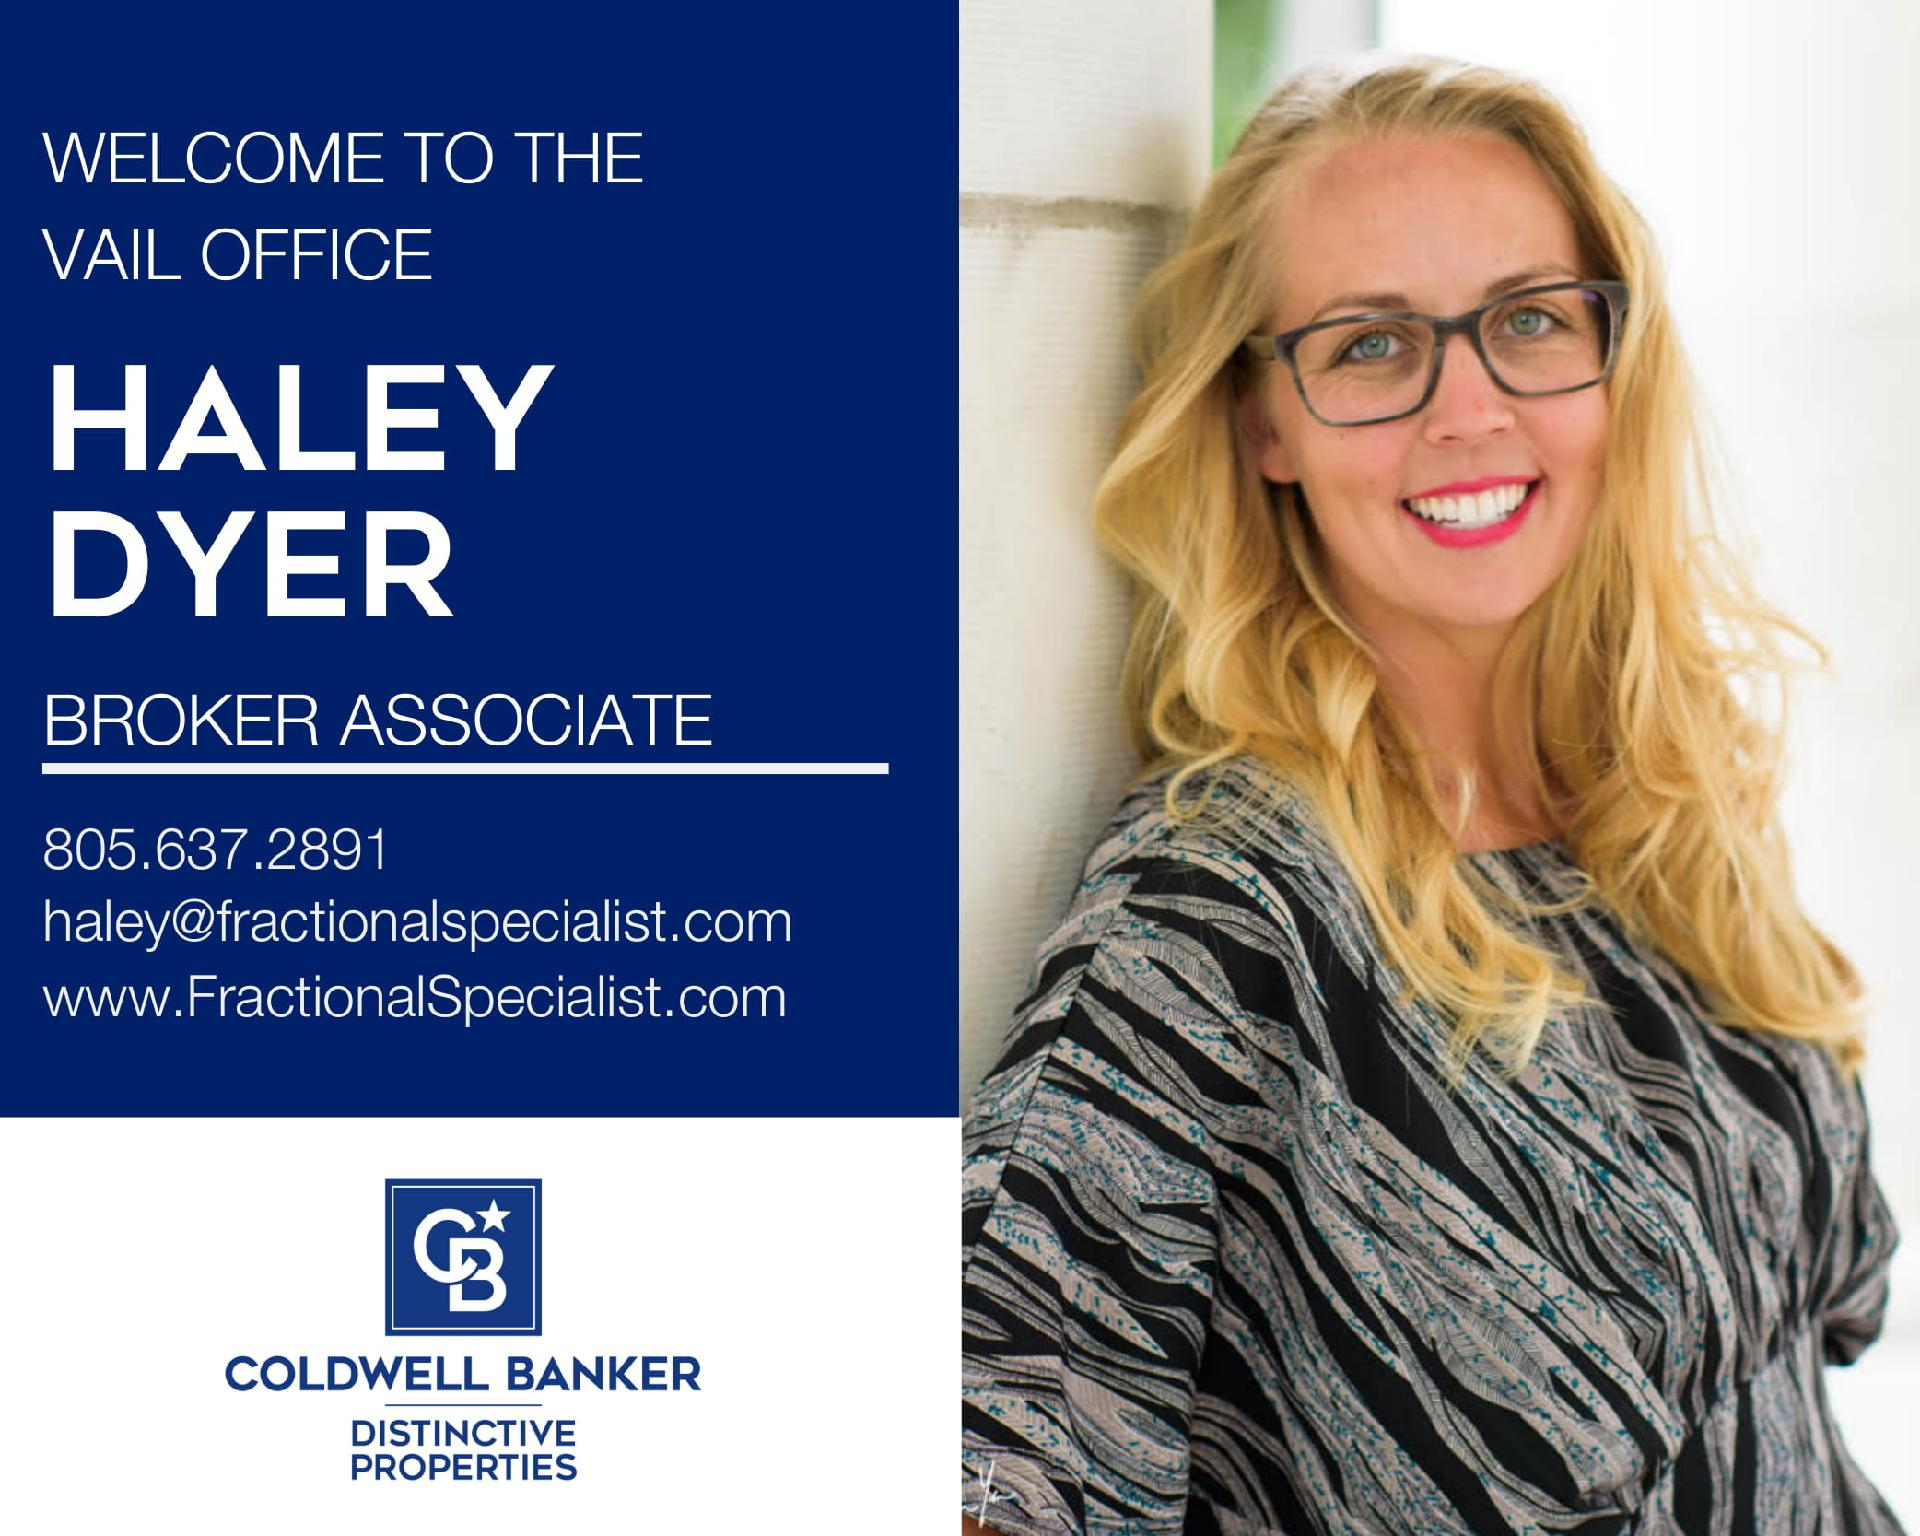 Please help us welcome Haley Dyer to our Coldwell Banker family! Main Photo